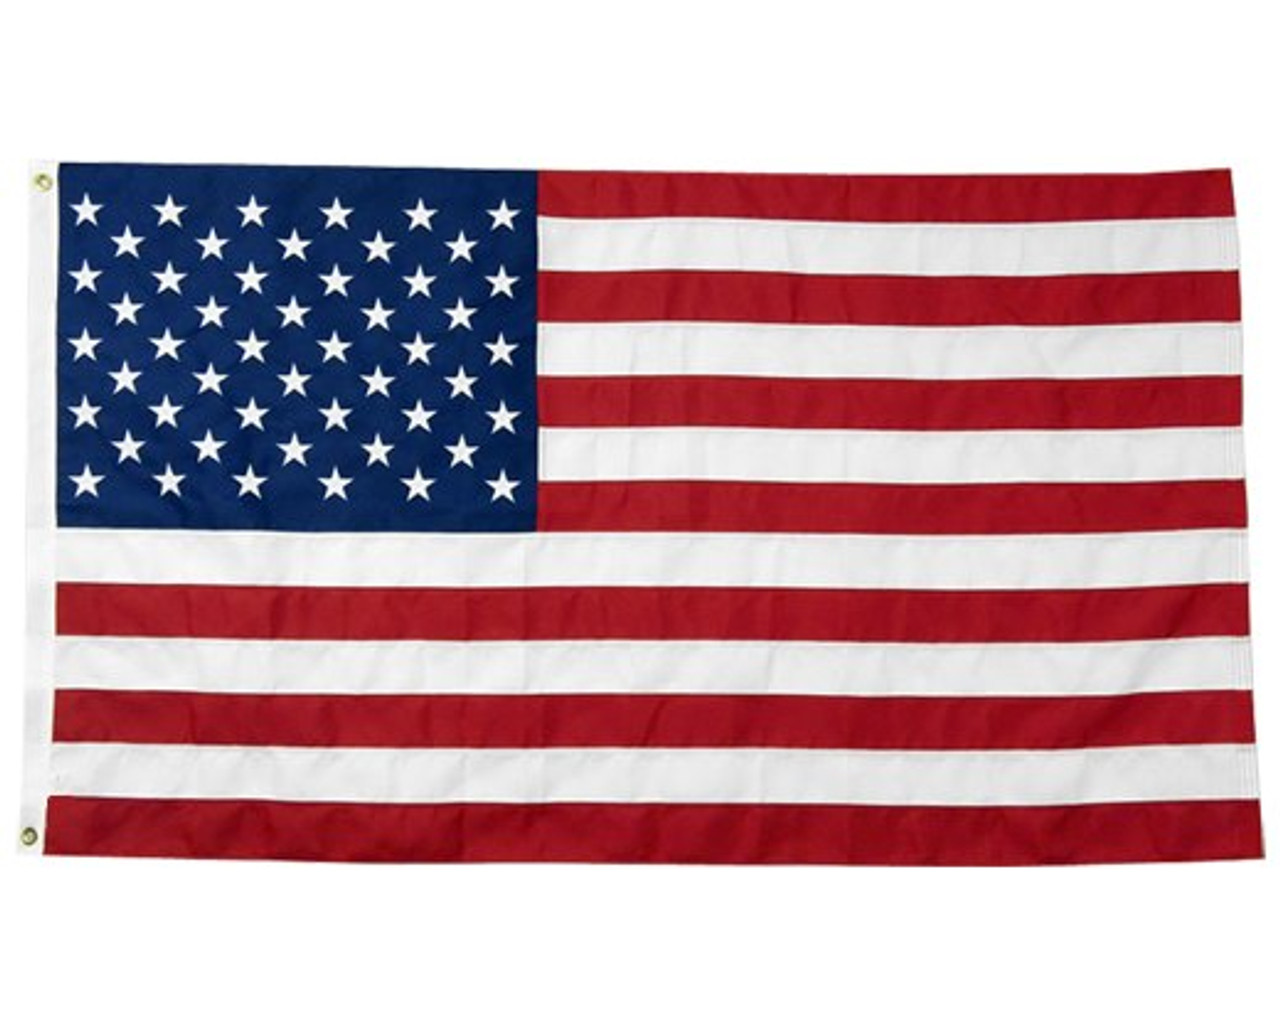 United States of America Flag, 3' x 5', Extra Tough with Header & Grommets